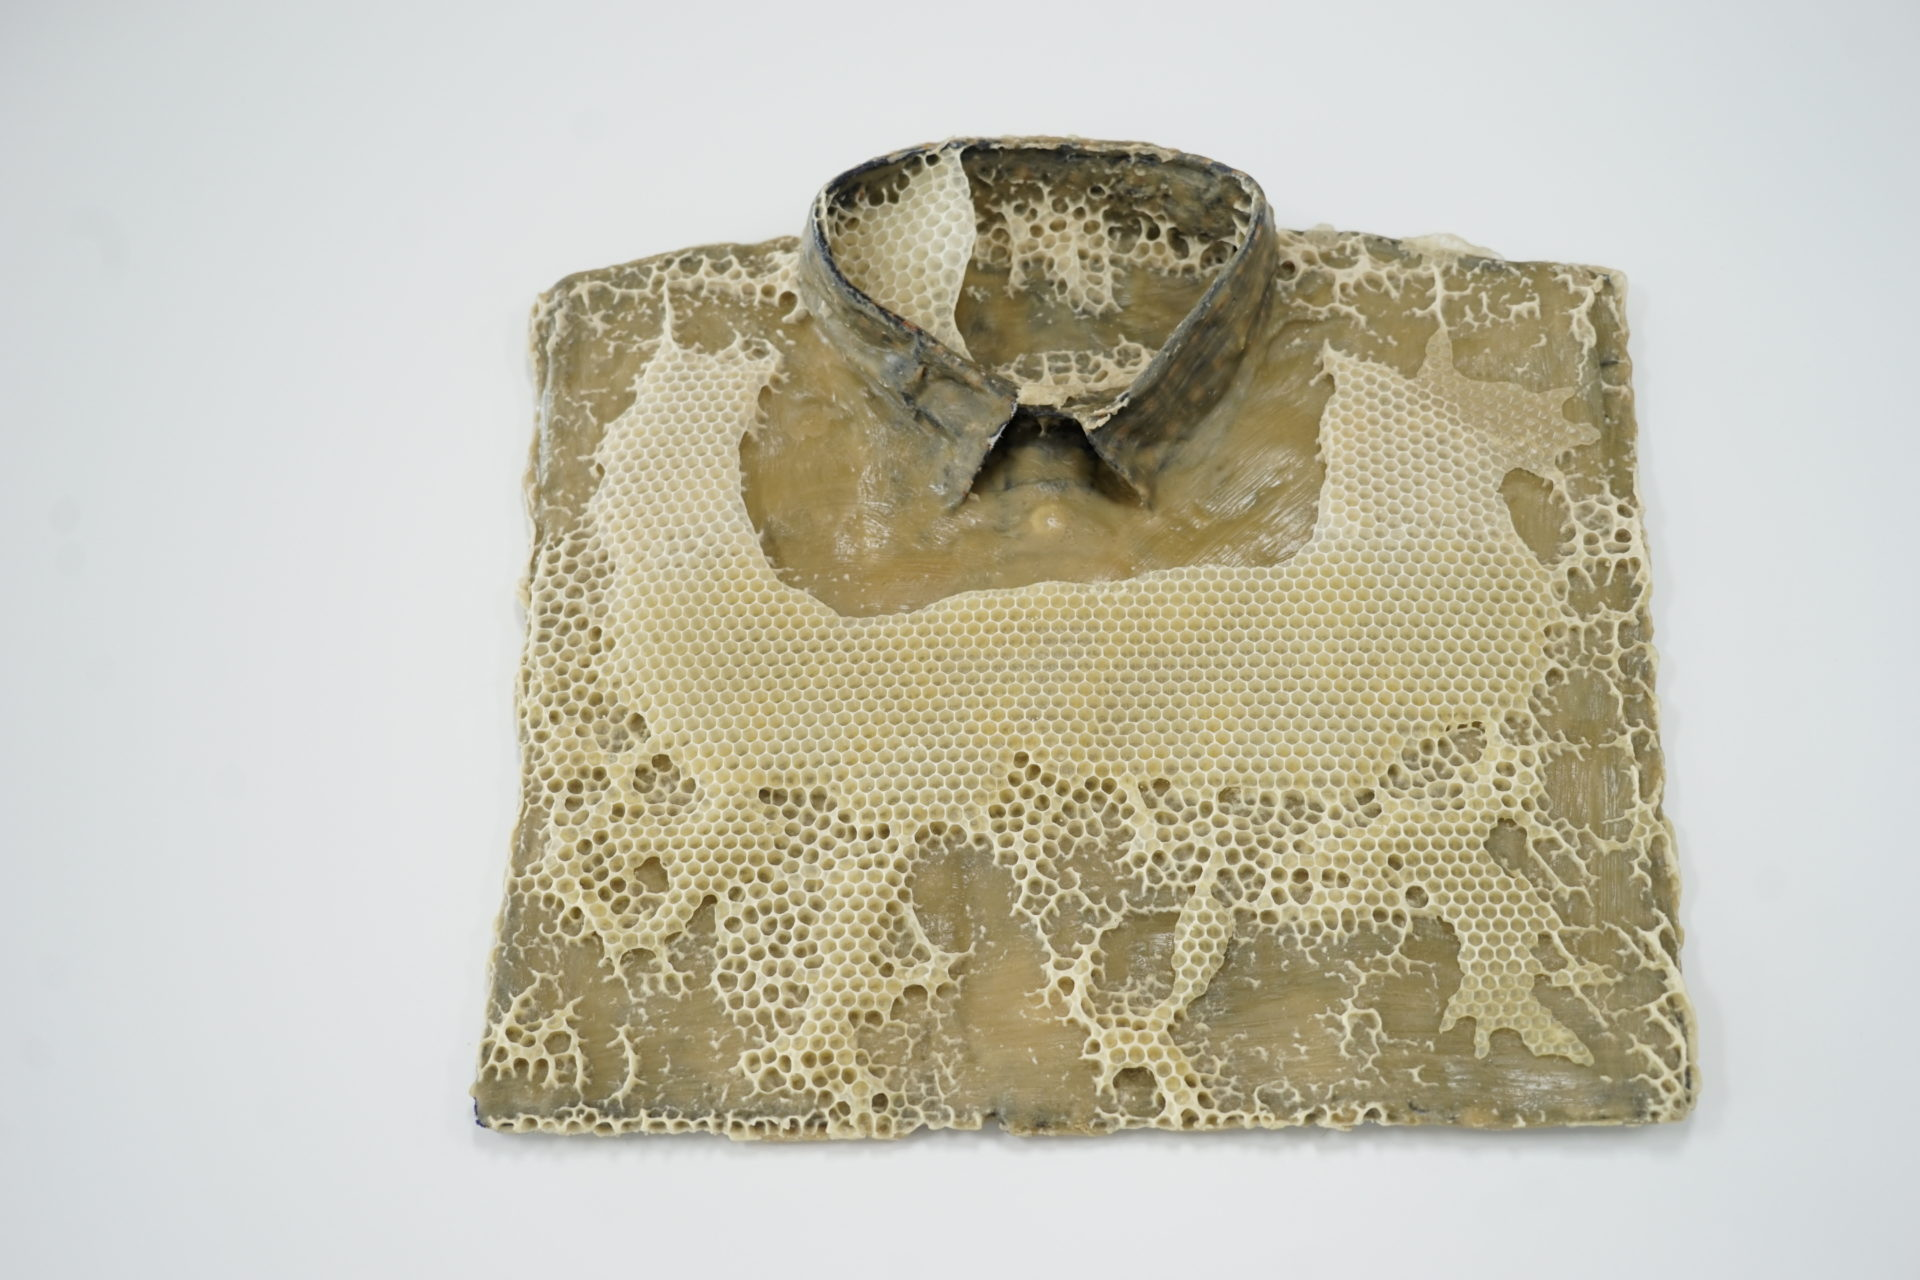 Franz Ehmann, 'Fourteen Days', 2018, Beeswax on cotton shirts with resin buttons